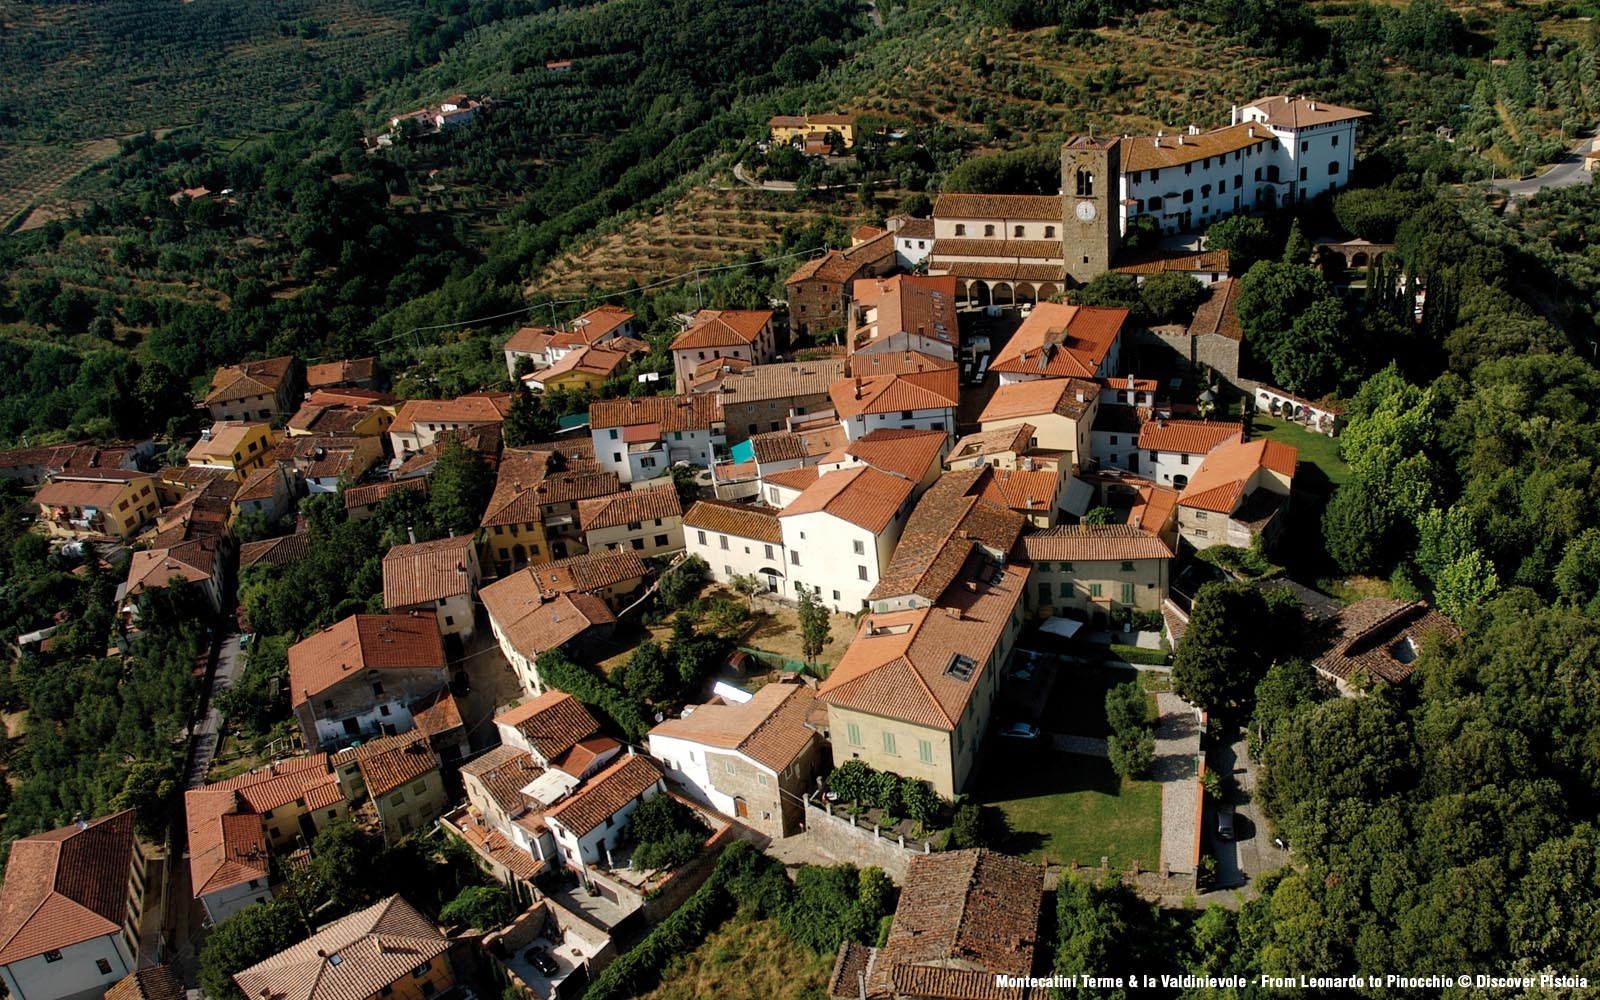 Monsummano Terme - Monsummano terme: the eighth wonder of the world - Tuscany, Beautiful Everywhere